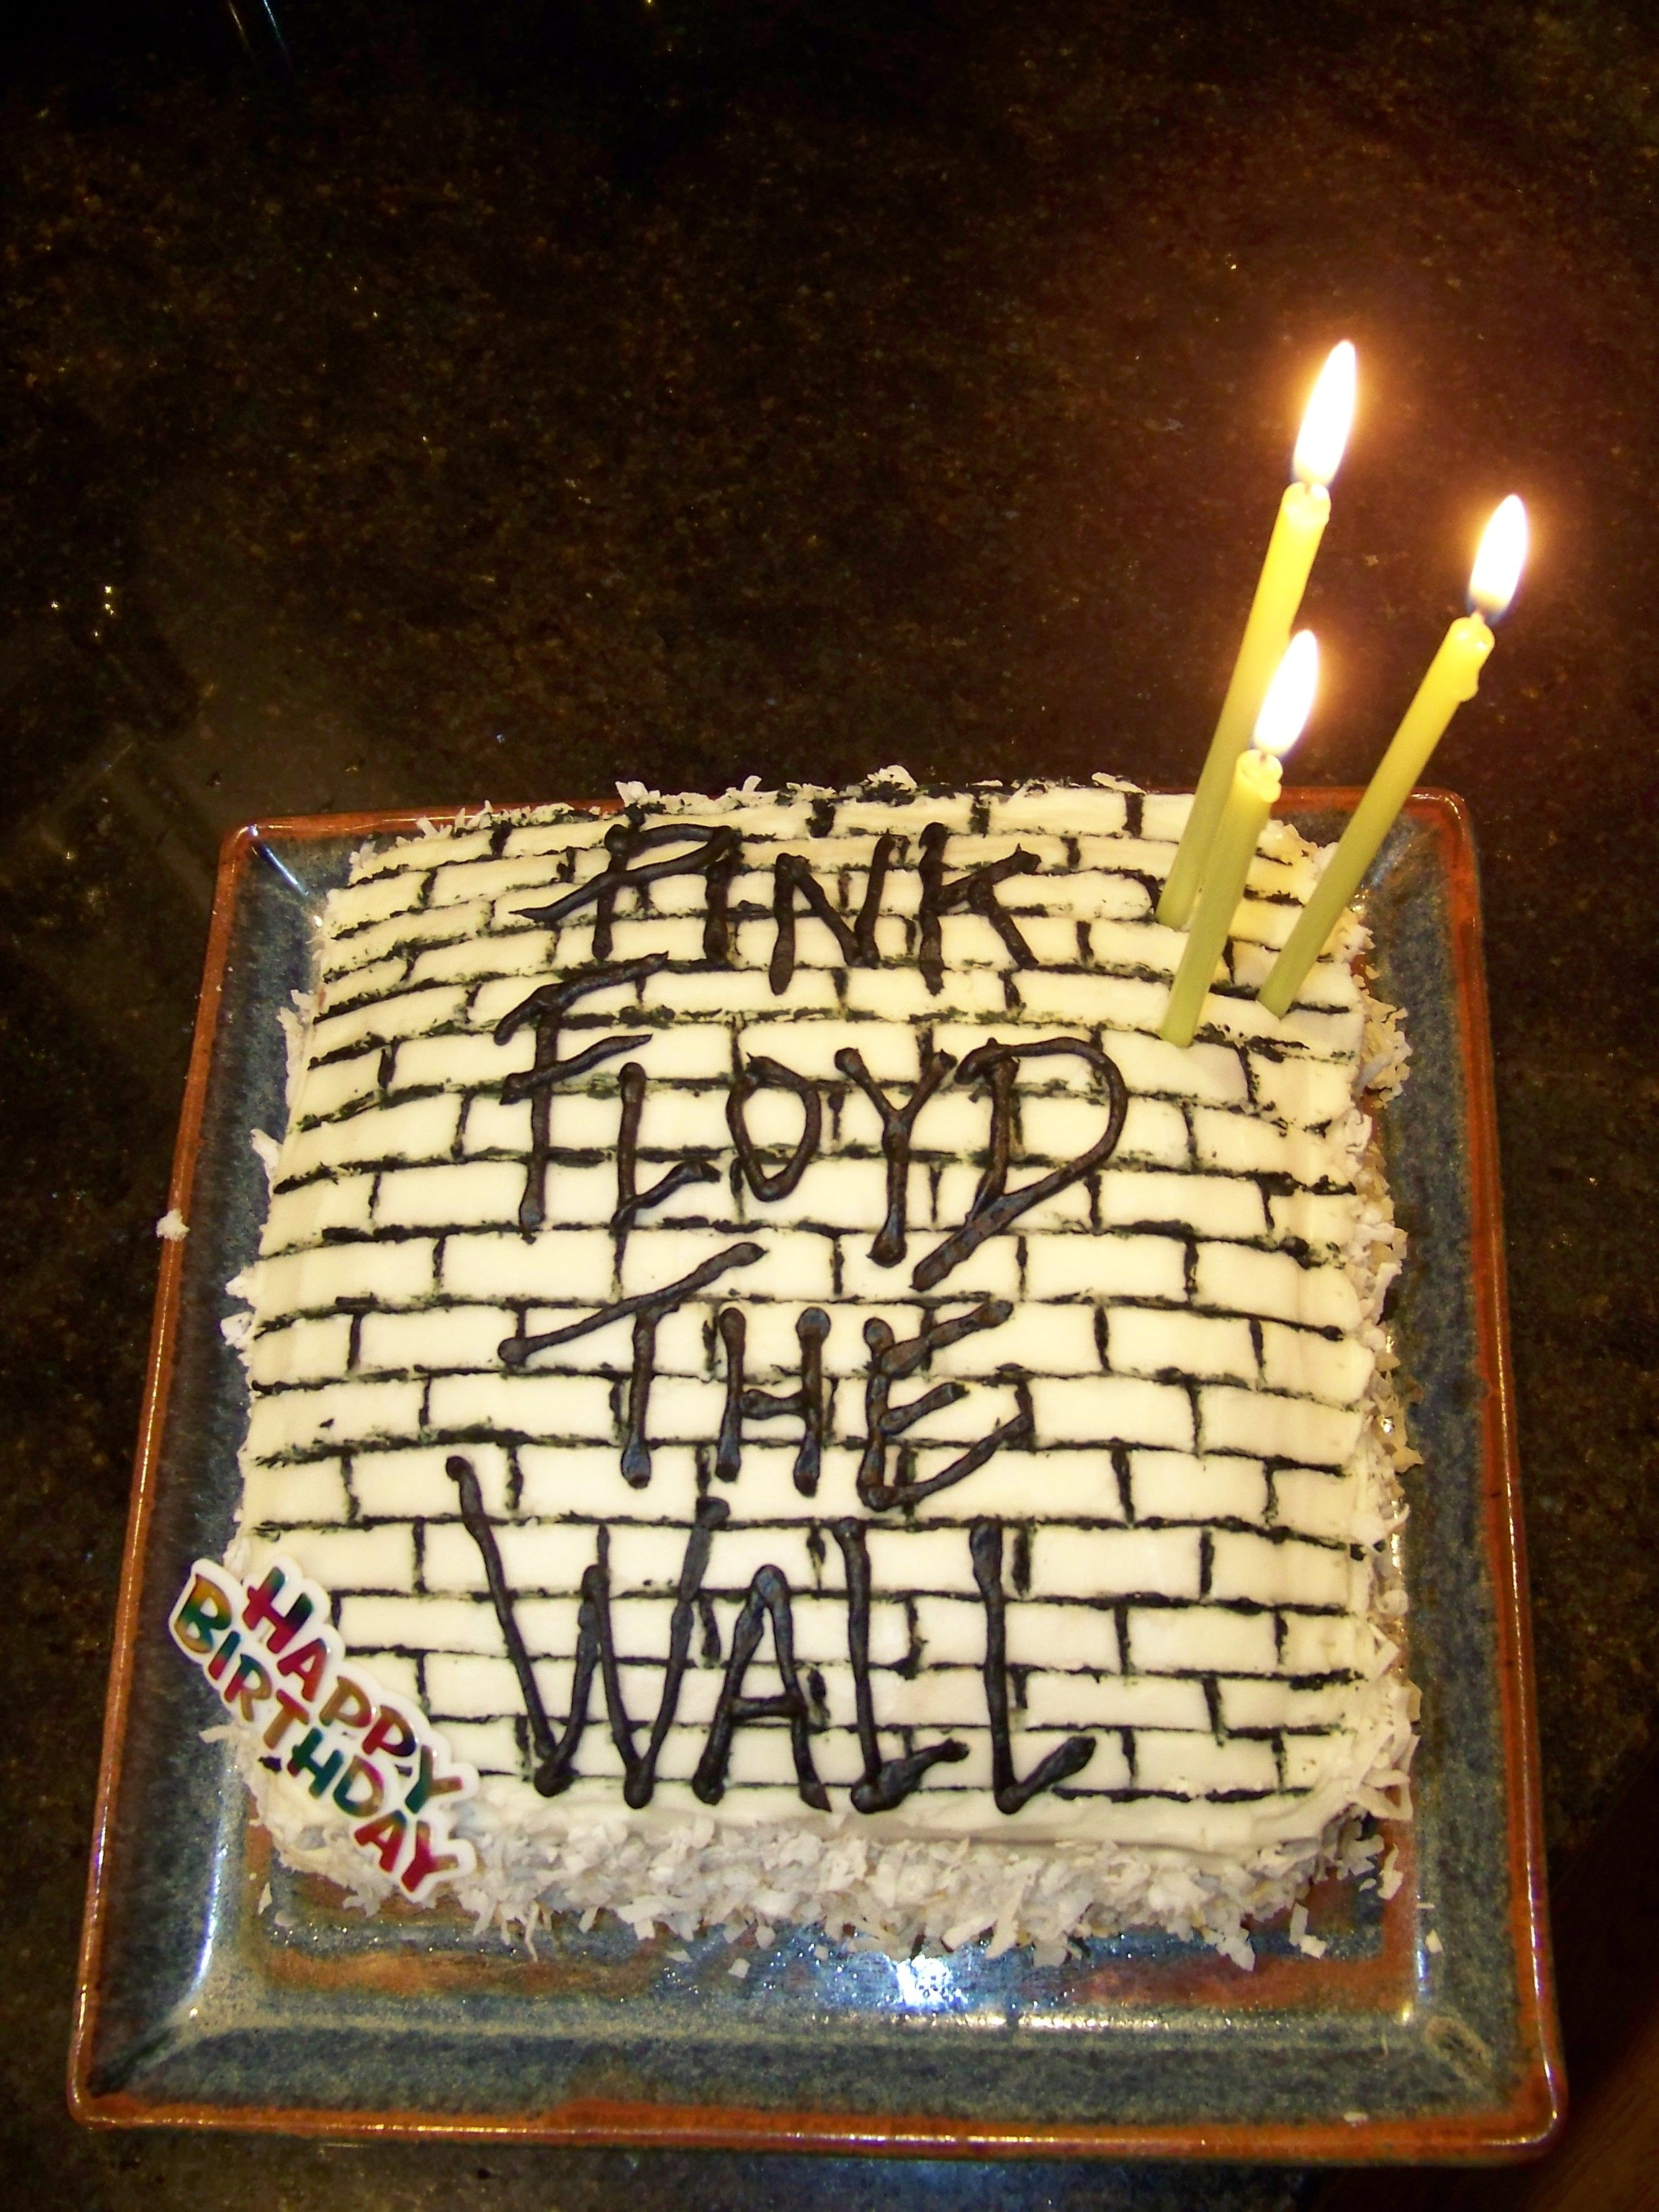 My Sons 33rd Birthday Cake Made By Me His Mom He Is A Pink Floyd 1 Fan